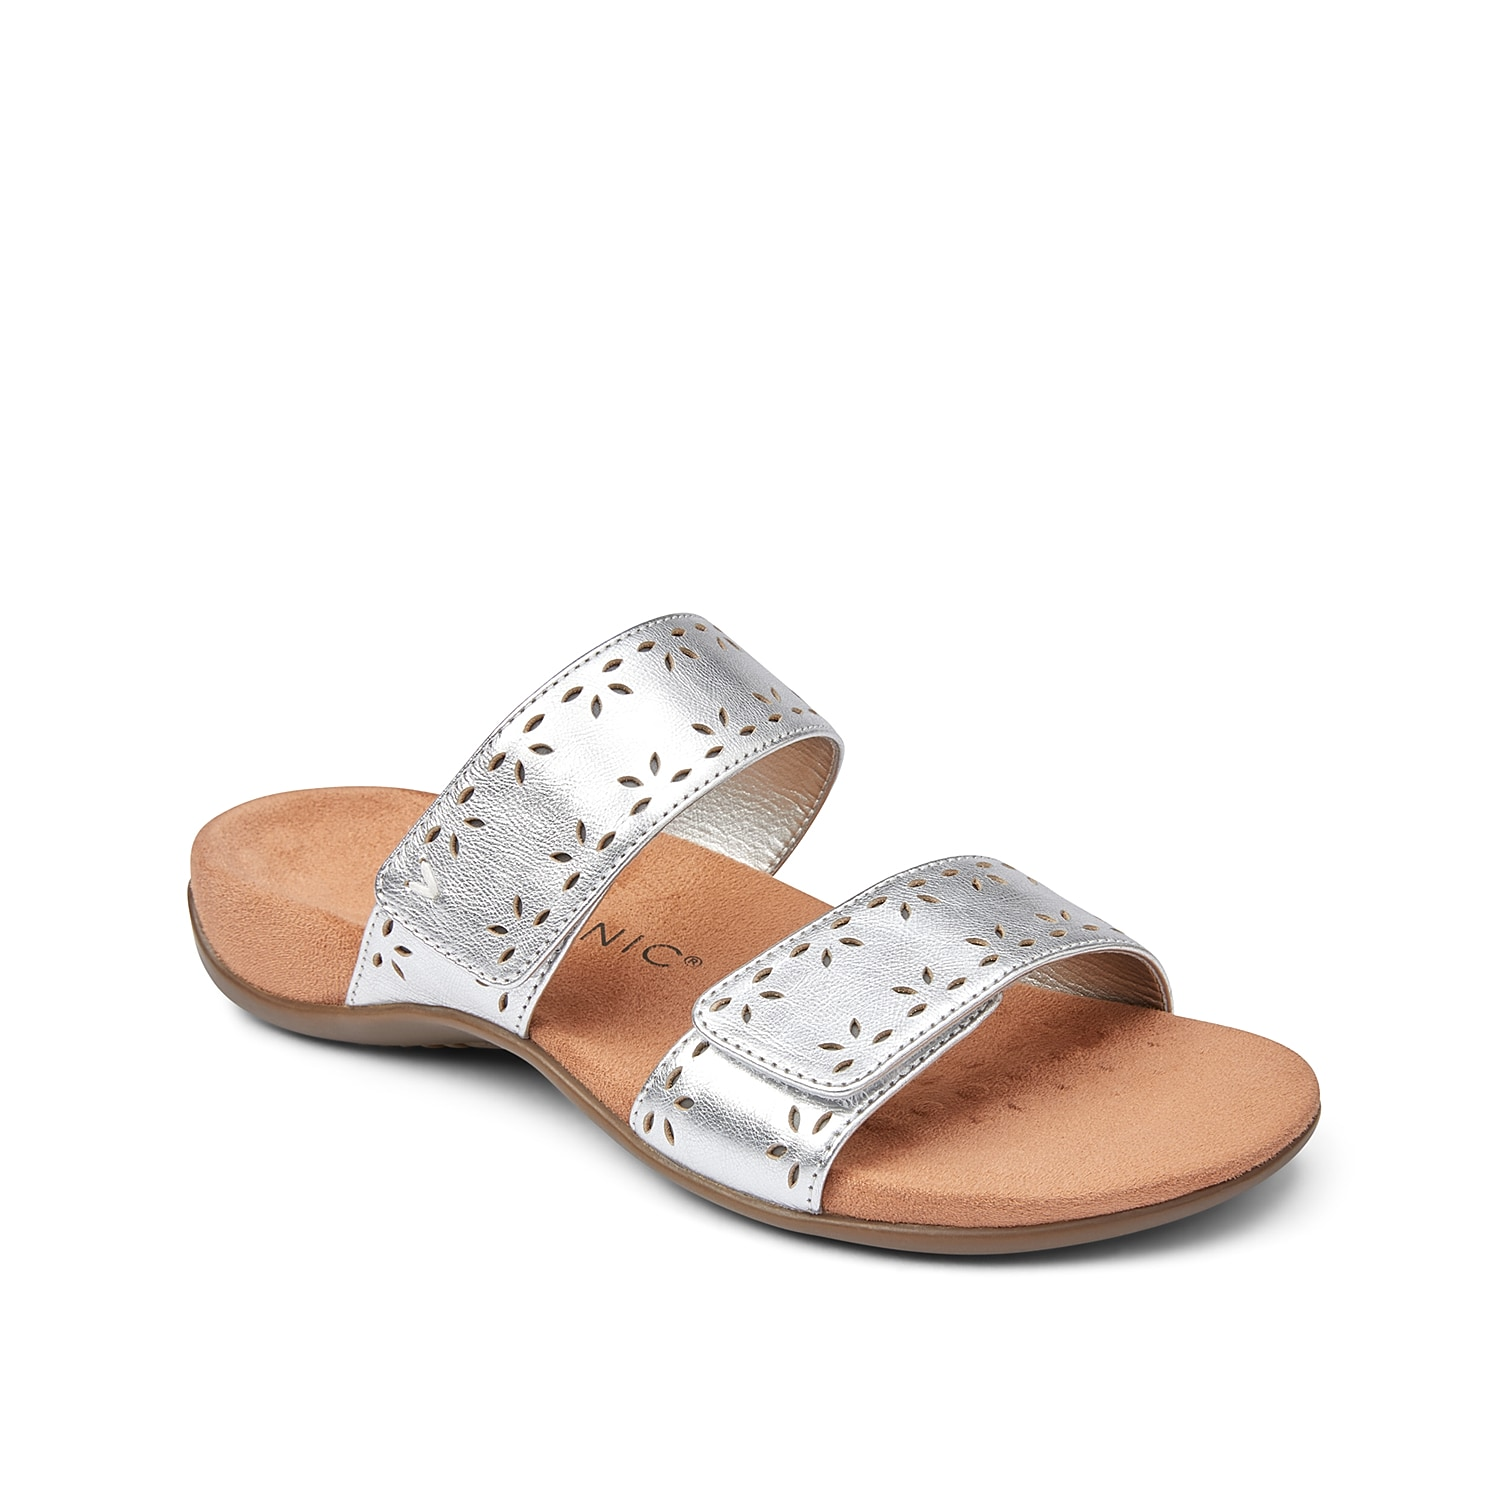 Stay stylish while feeling your best in the Randi II sandal from Vionic. These two-band slides feature adjustable straps for a custom fit and the contoured footbed promotes lasting comfort.